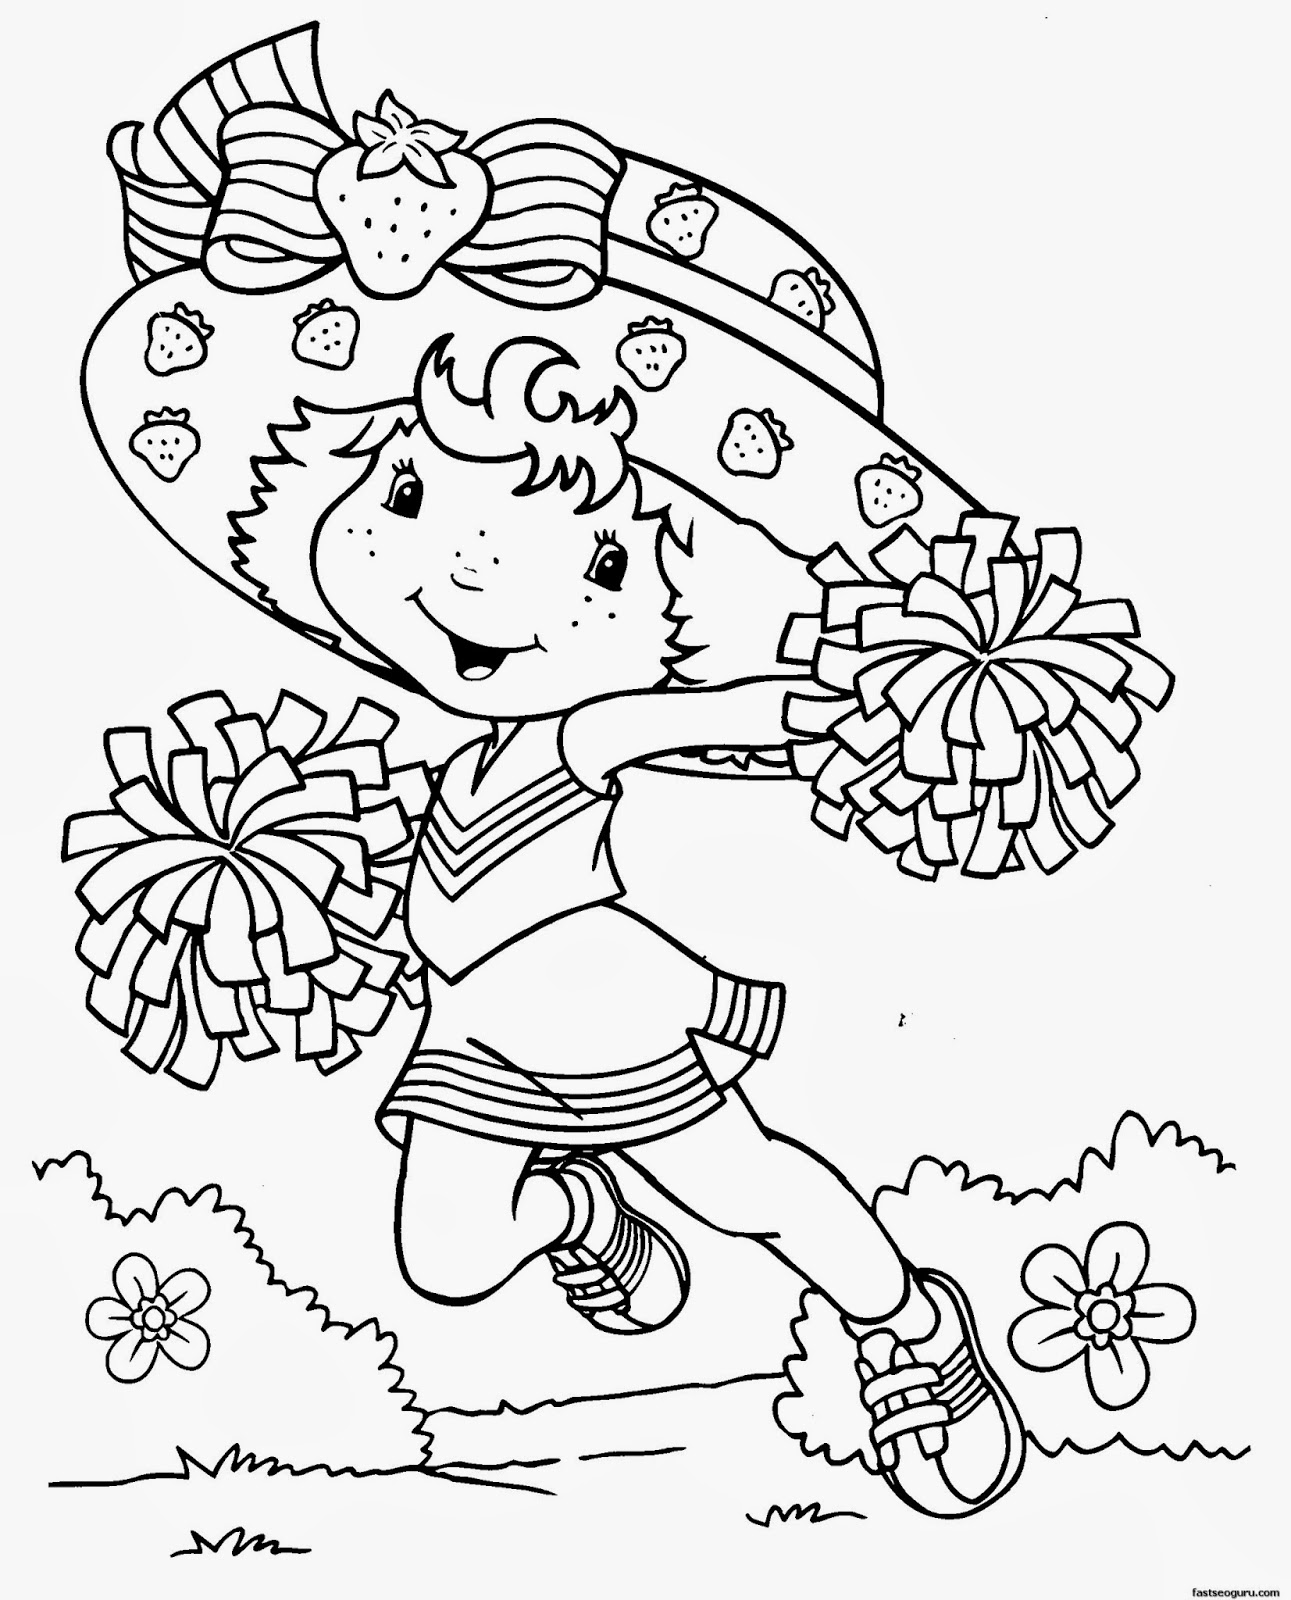 Coloring pages for girl printable - Coloring Pages Printable Free For Girls Printable Cartoon Coloring Pages